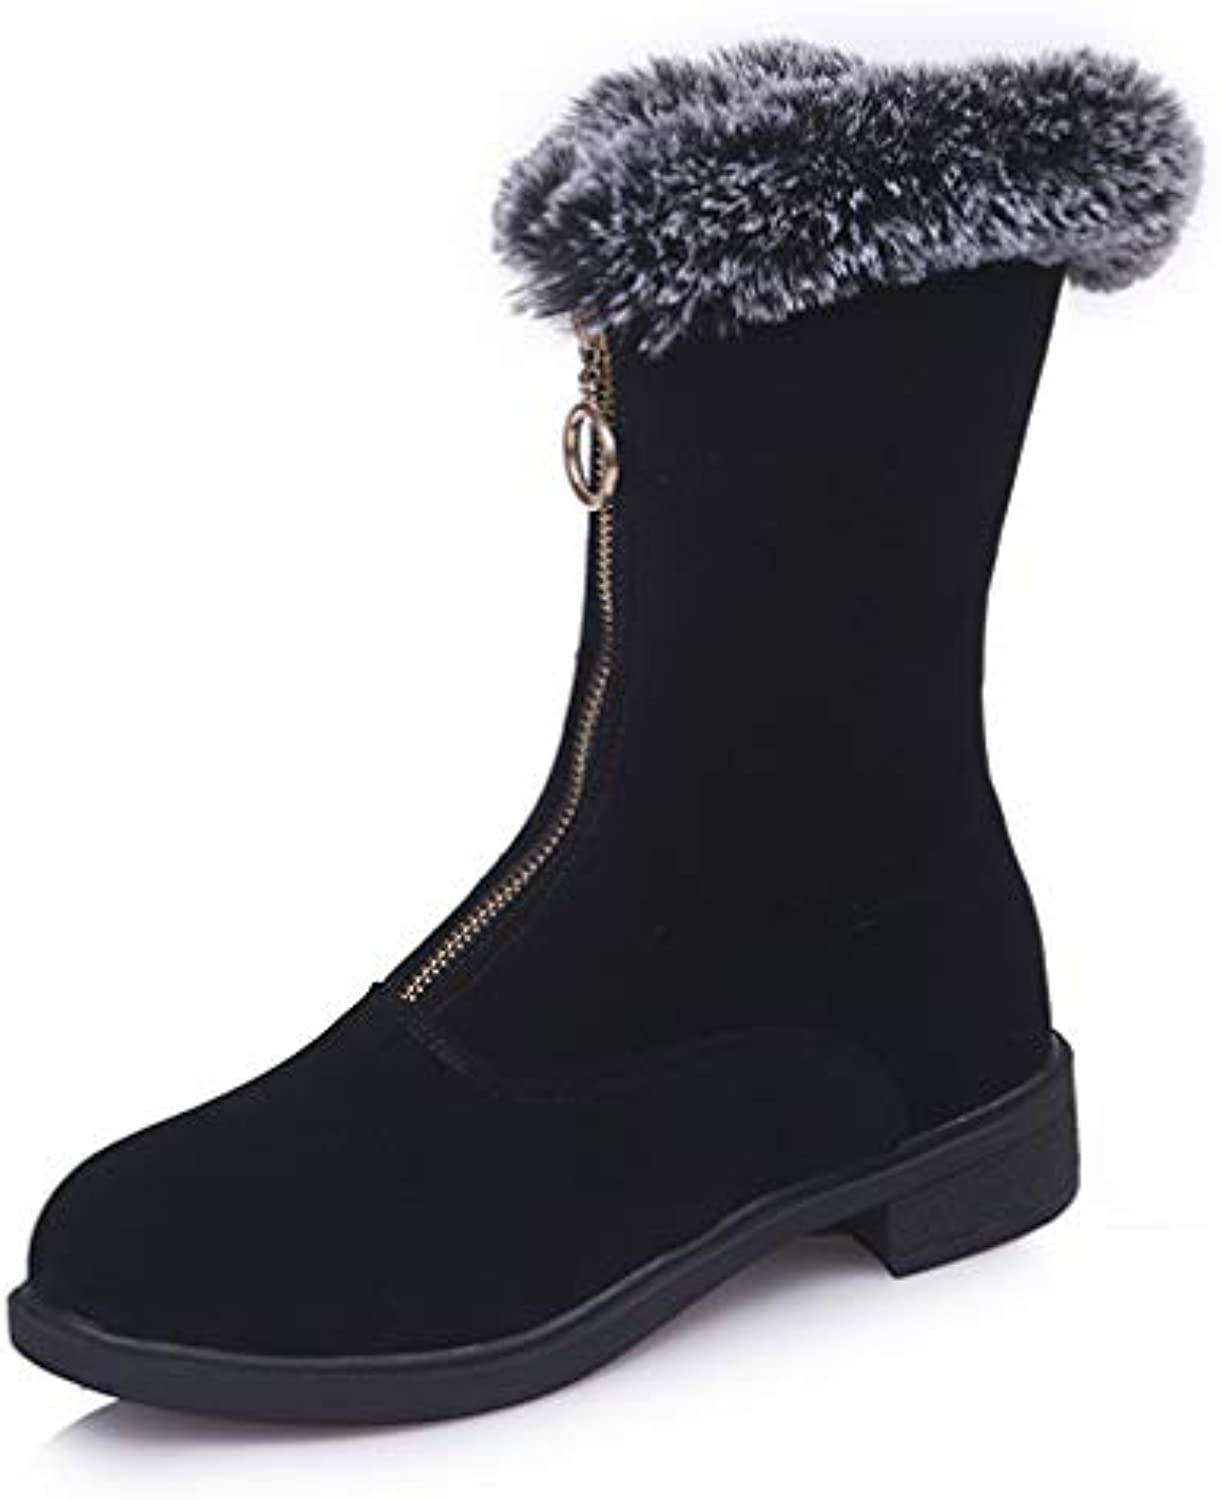 T-JULY Winter Women Keep Warm Russia Plush Snow Boots Fashion Fluffy Furry Fur Ankle Boots Ladies Zipper Flat shoes